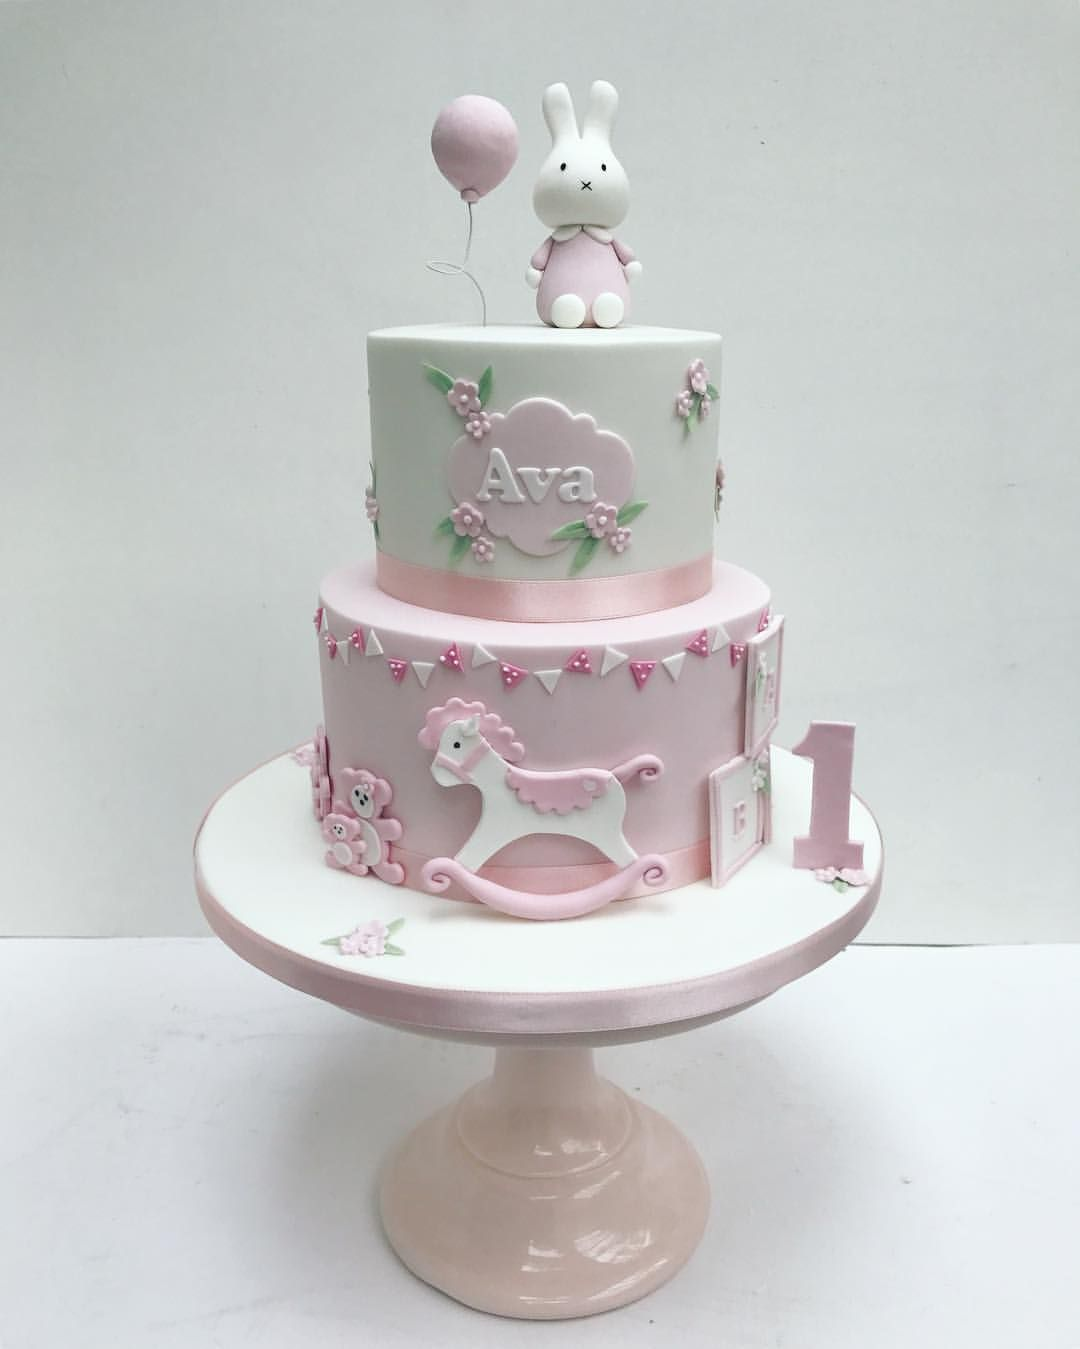 Pleasing Miffy Pink Bunny Cake For Little Girls First Birthday By Sweet Funny Birthday Cards Online Sheoxdamsfinfo